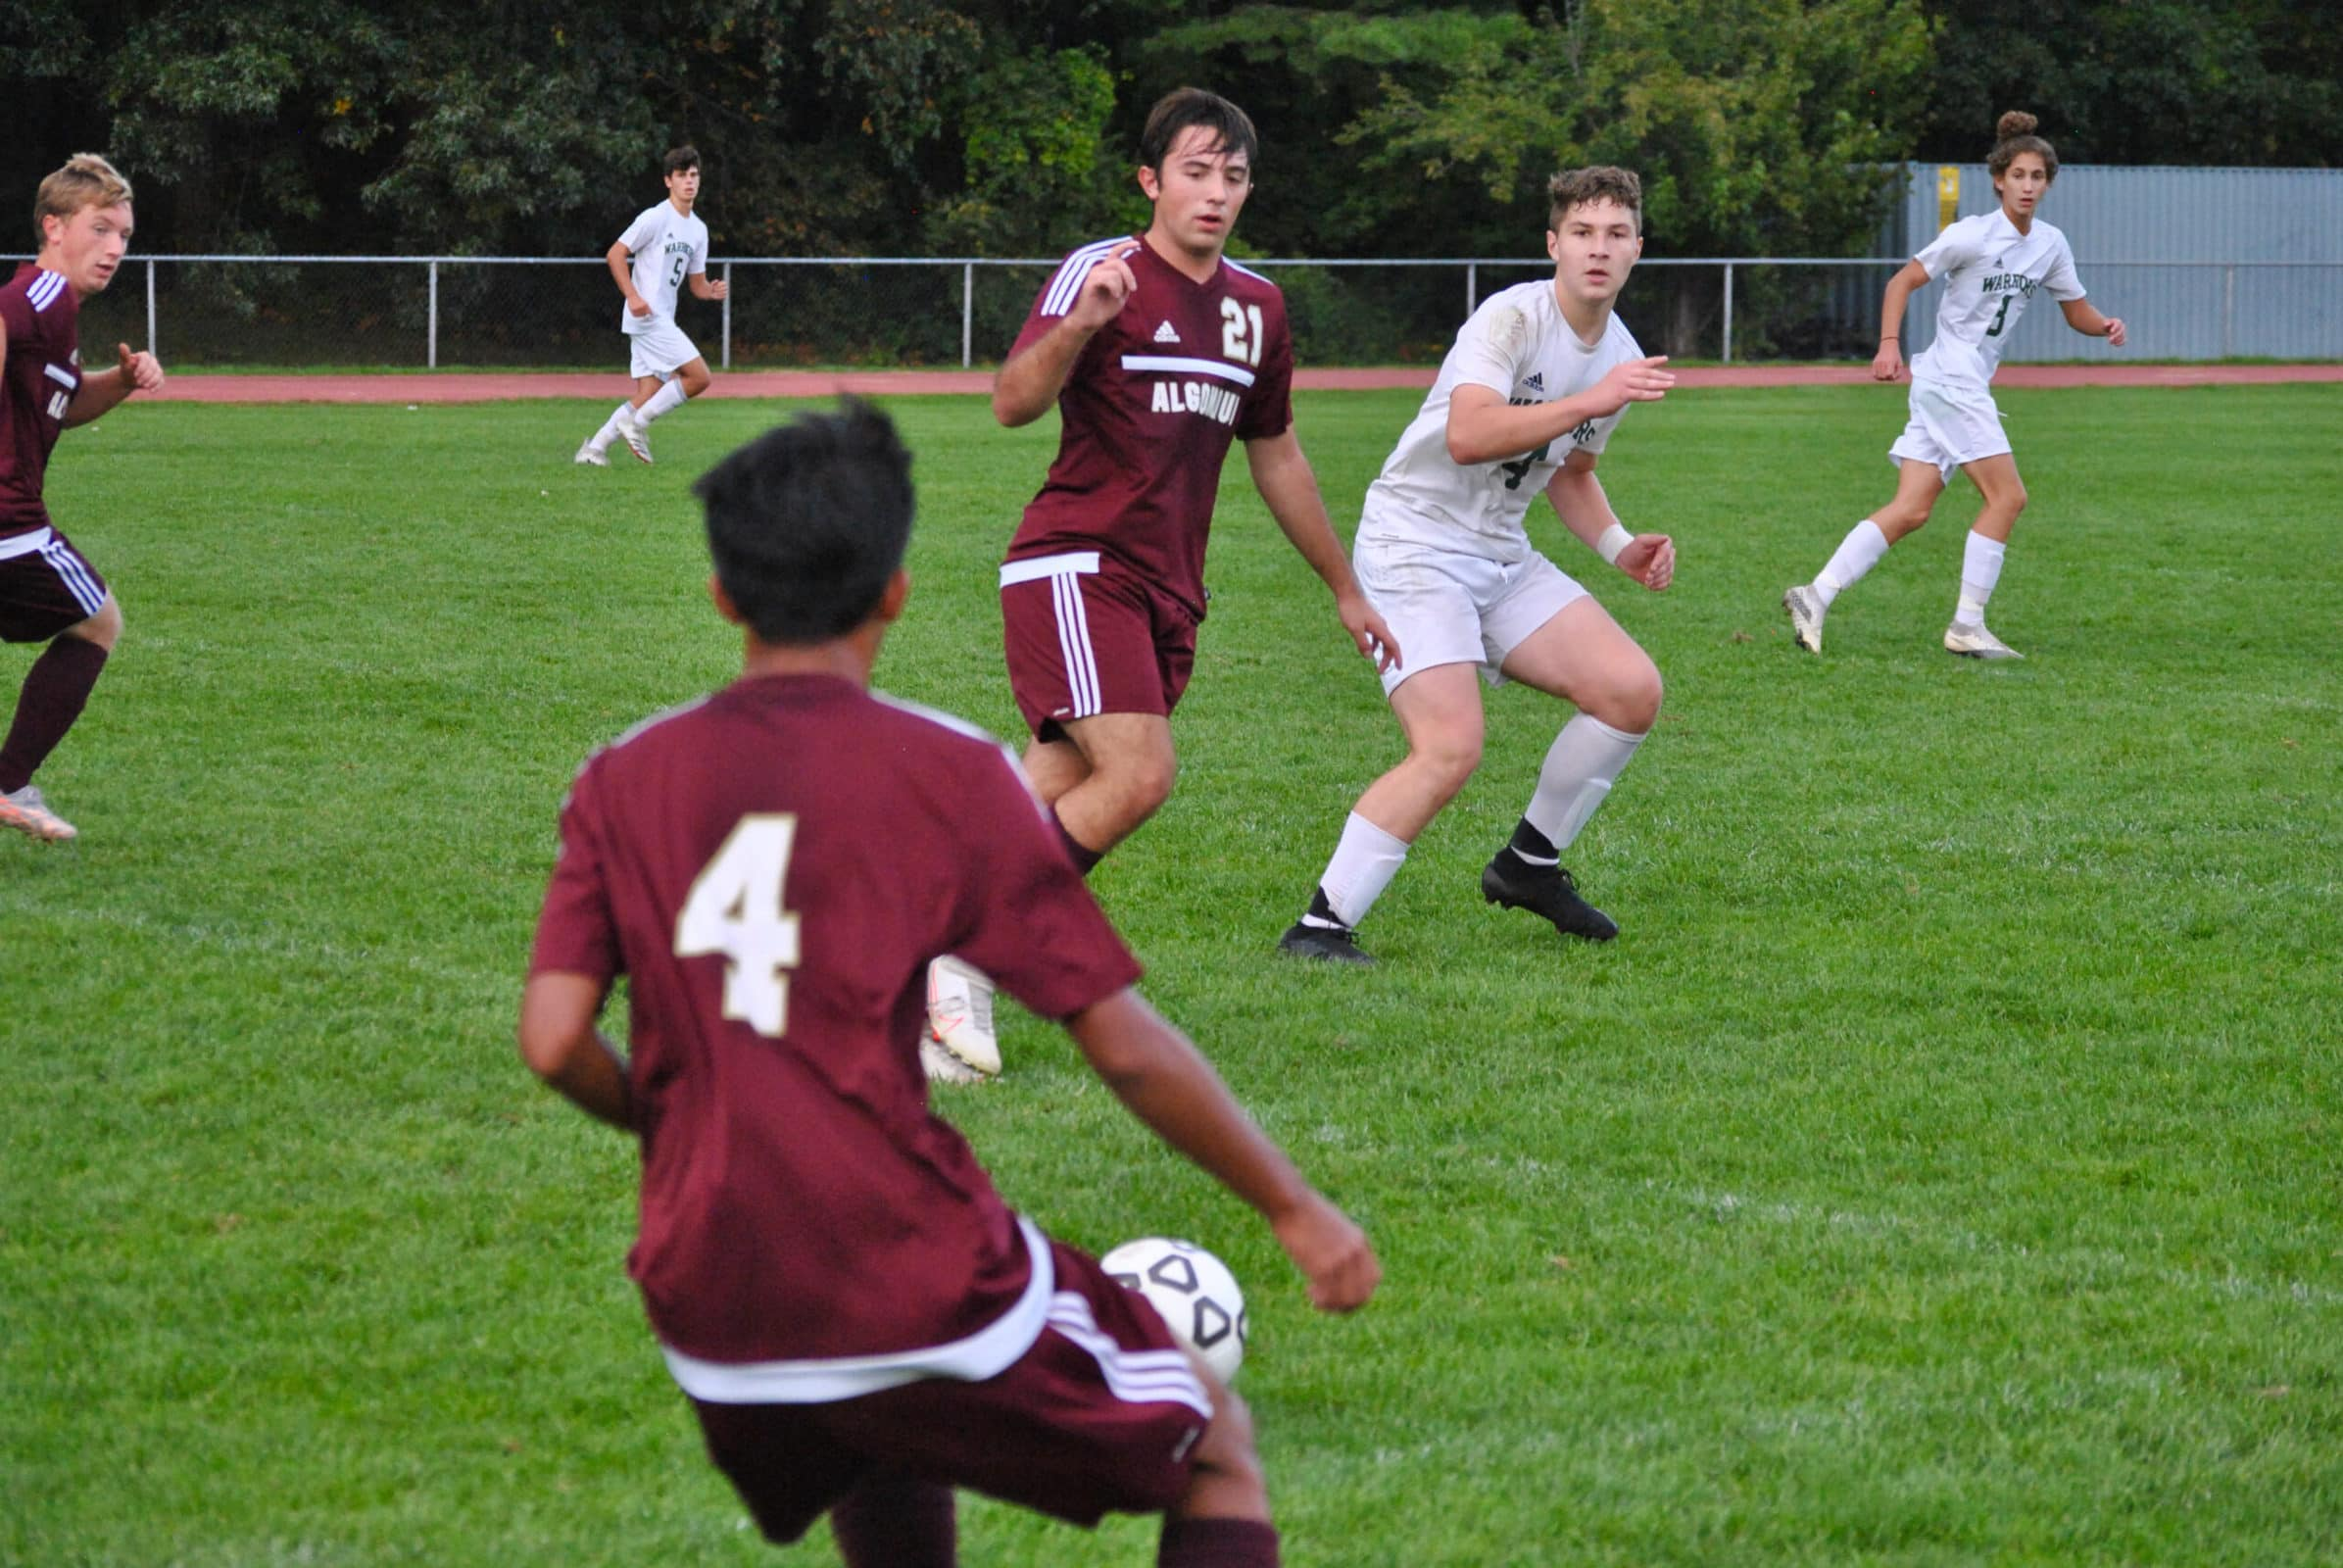 Algonquin's Keenan Siao eyes his options while holding possession at midfield against Tantasqua.